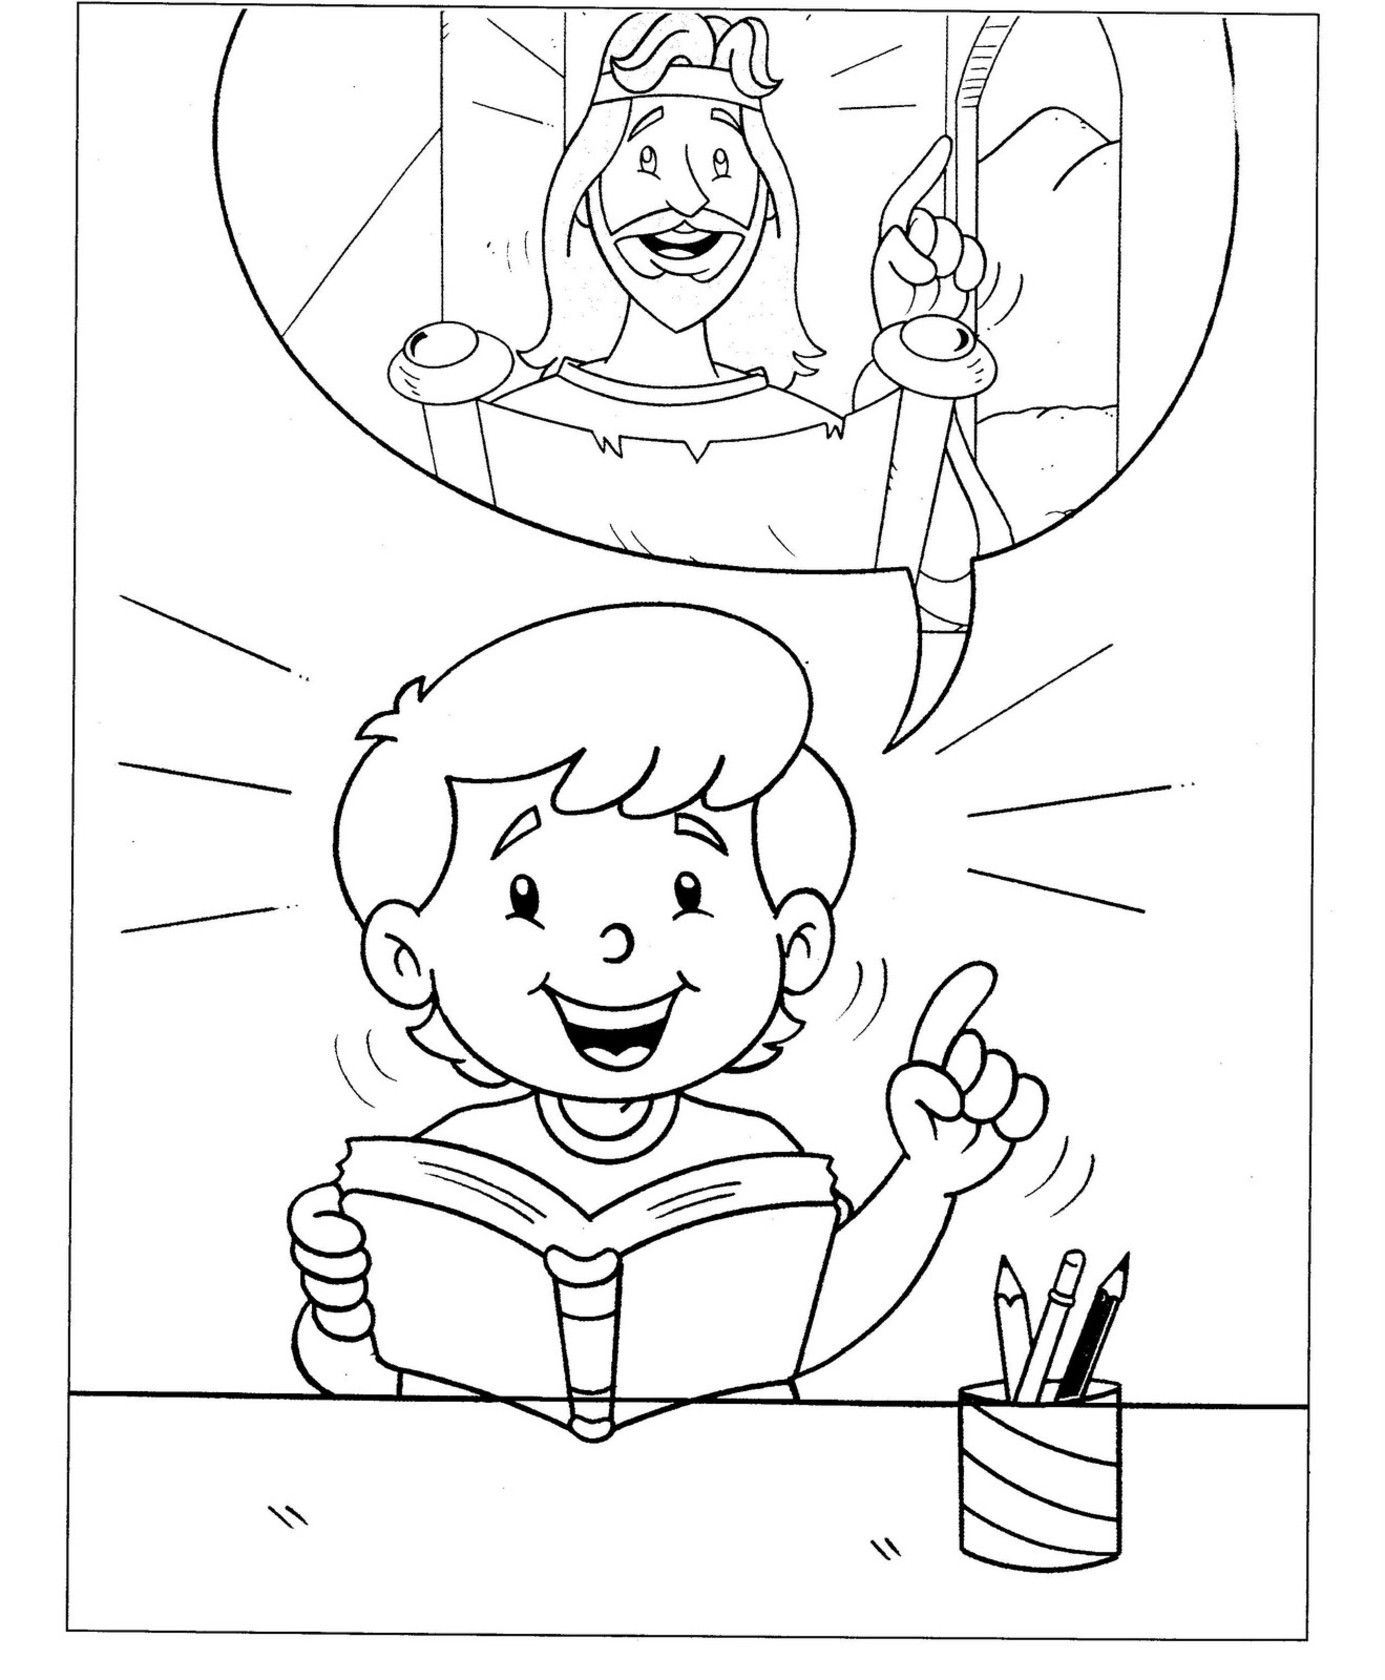 Coloring pages christian preschool - Religious Coloring Pages Bing Images